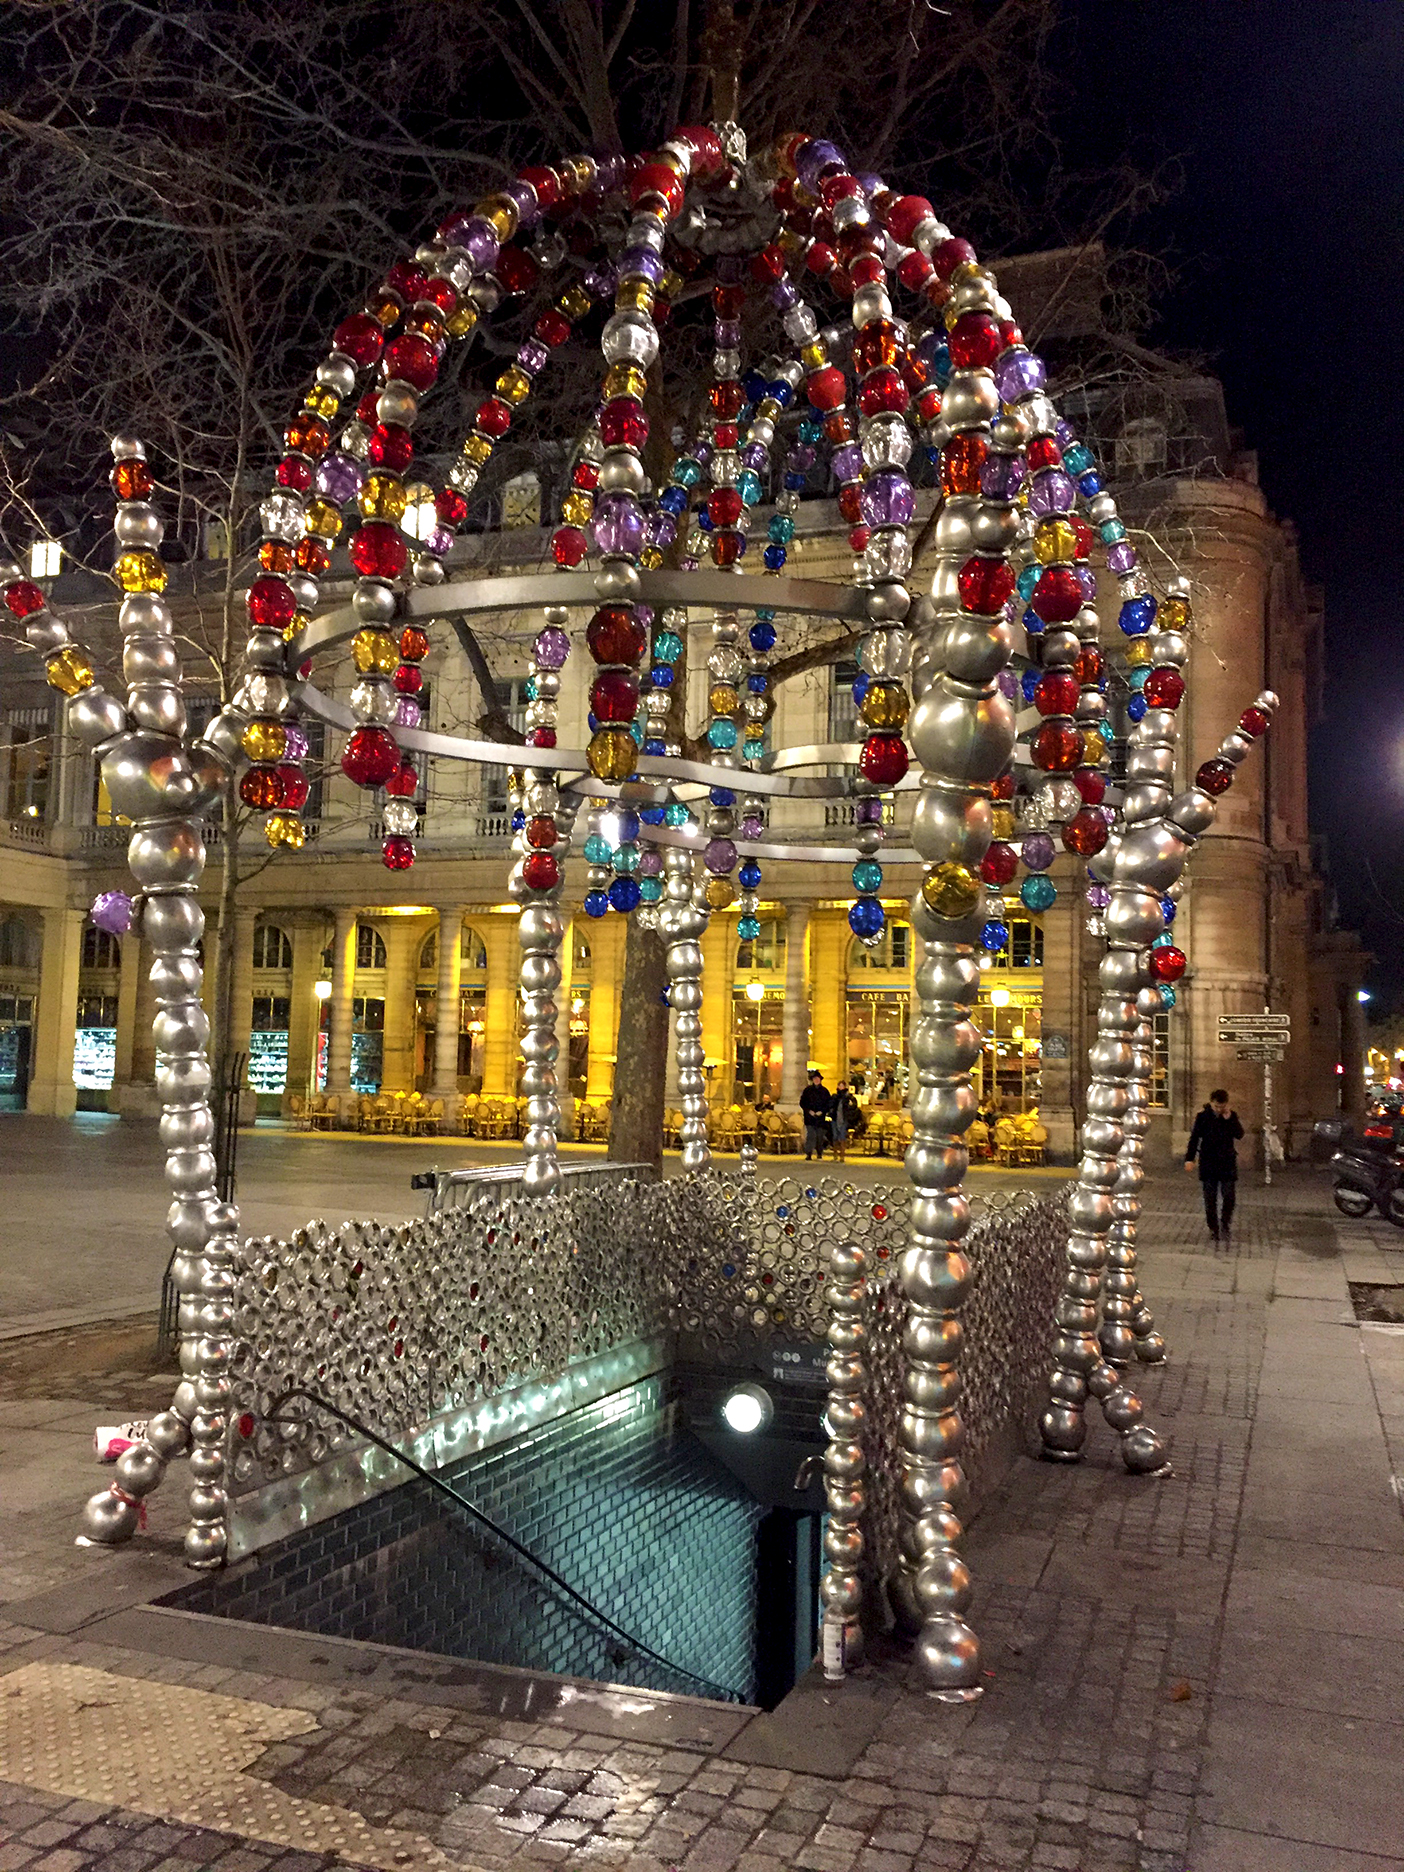 Le Kiosque des noctambules was erected in 2000 on place Colette. Made of aluminum spheres and Murano glass, it is an entrance for the Palais Royal-Musée du Louvre station.